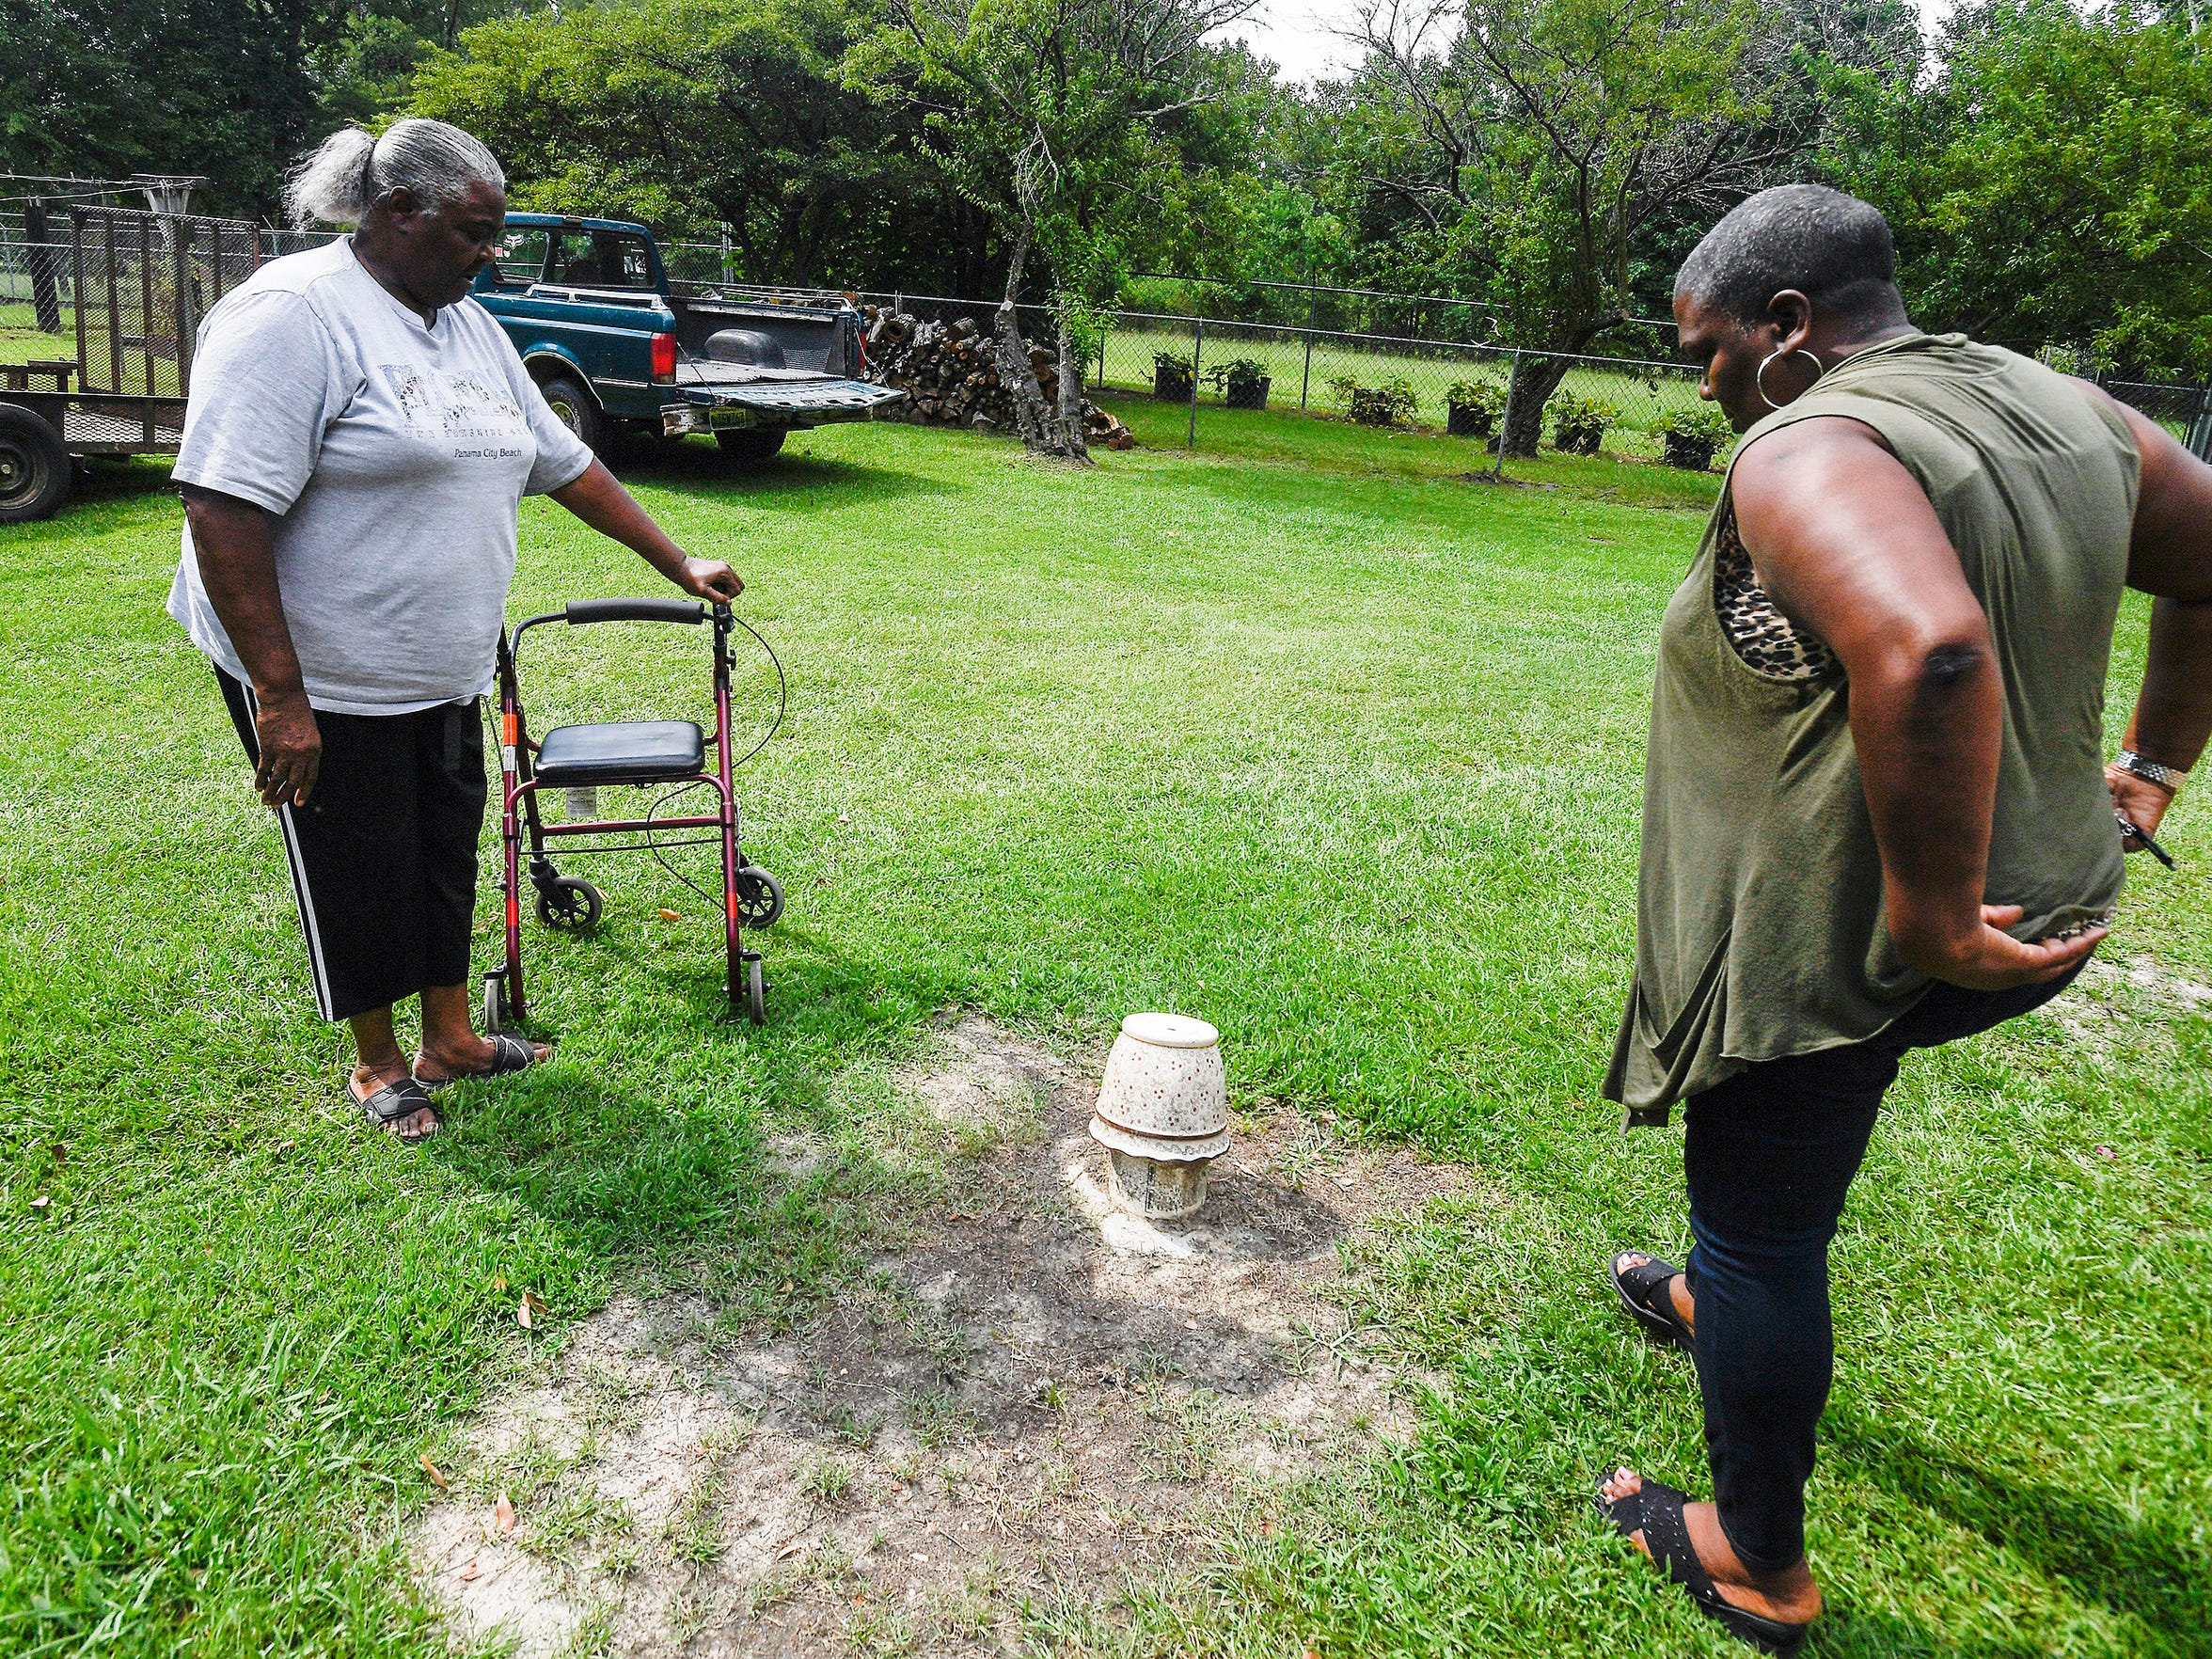 Charlie Mae Holcombe, left, and Mary McDonald stand by the cover to Holcombe's septic tank at her home in Hayneville, Ala. on Friday July 6, 2018. Holcombe has had decades of flooding and sewer problems at her home.